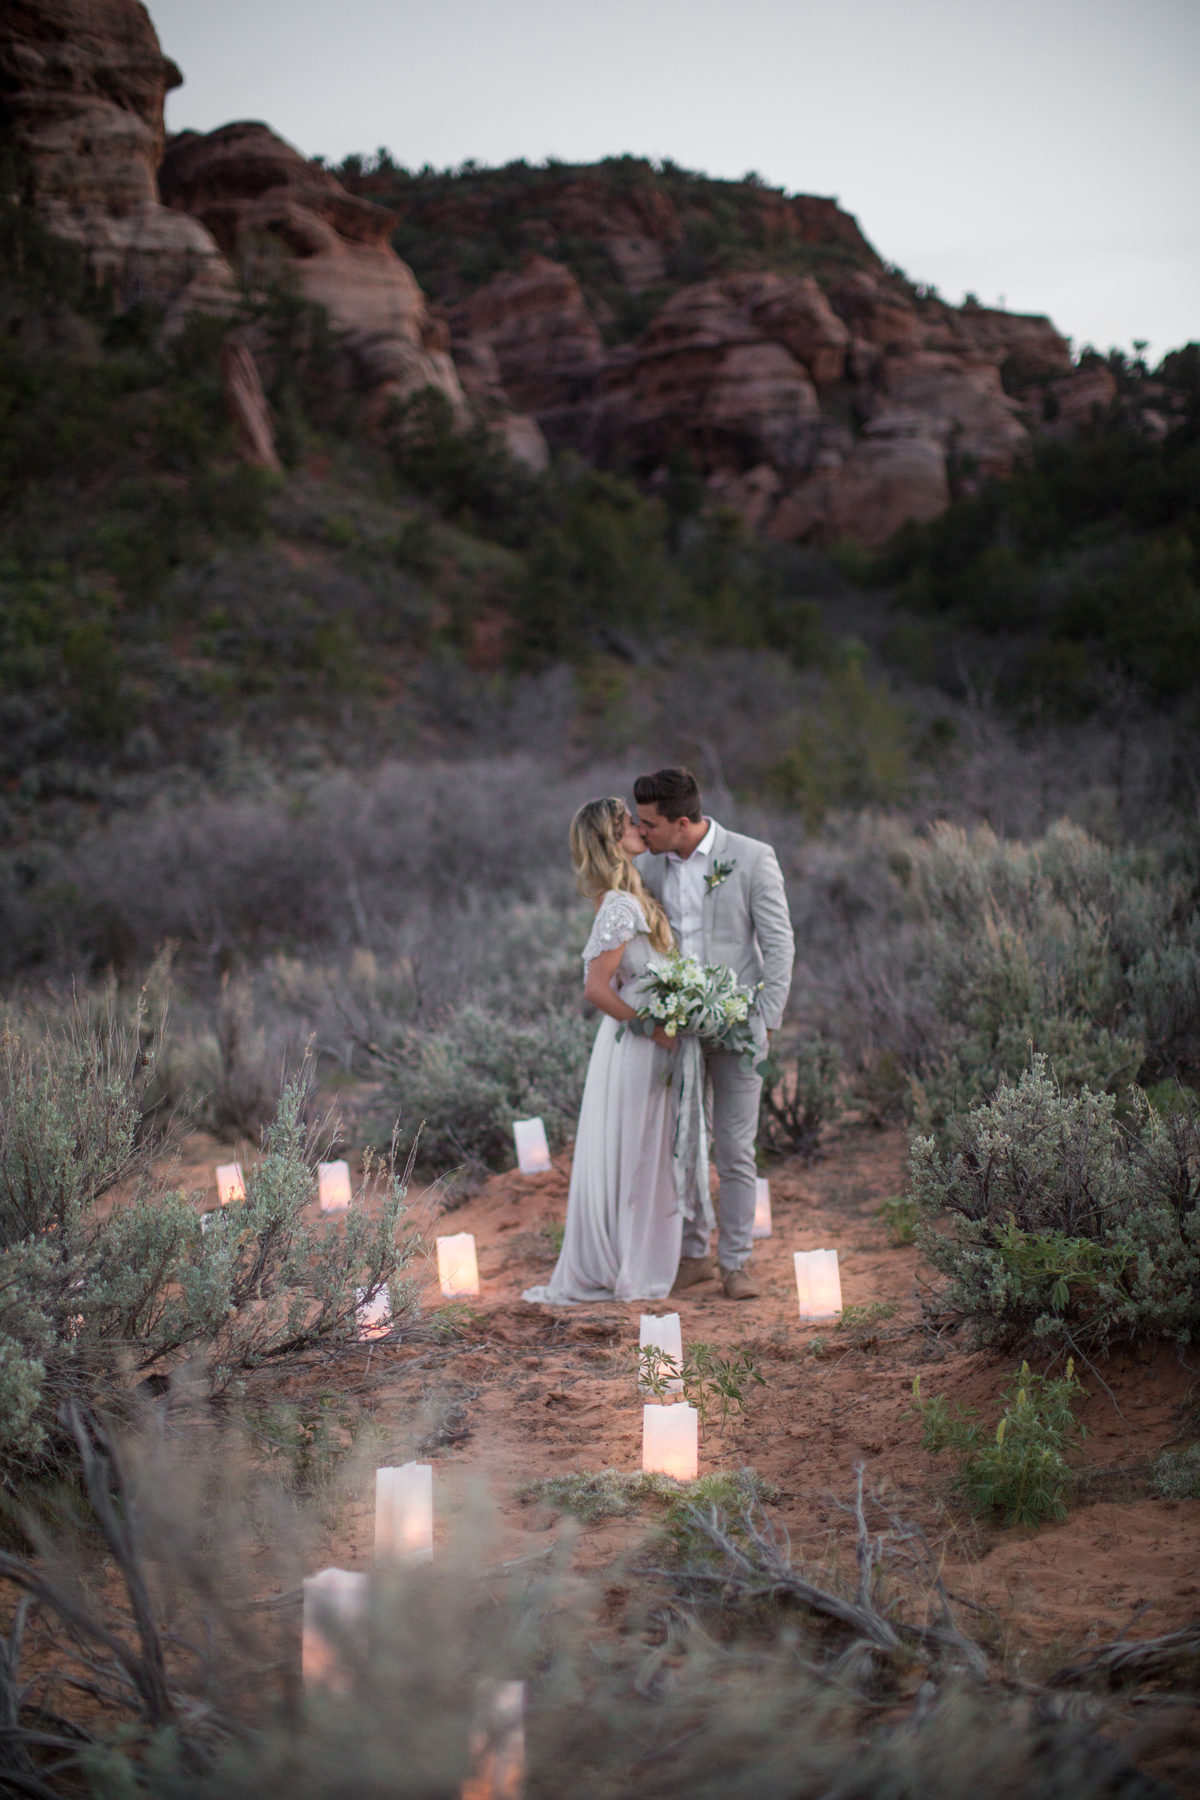 sunset wedding photos bride and groom kissing amongst candles in desert